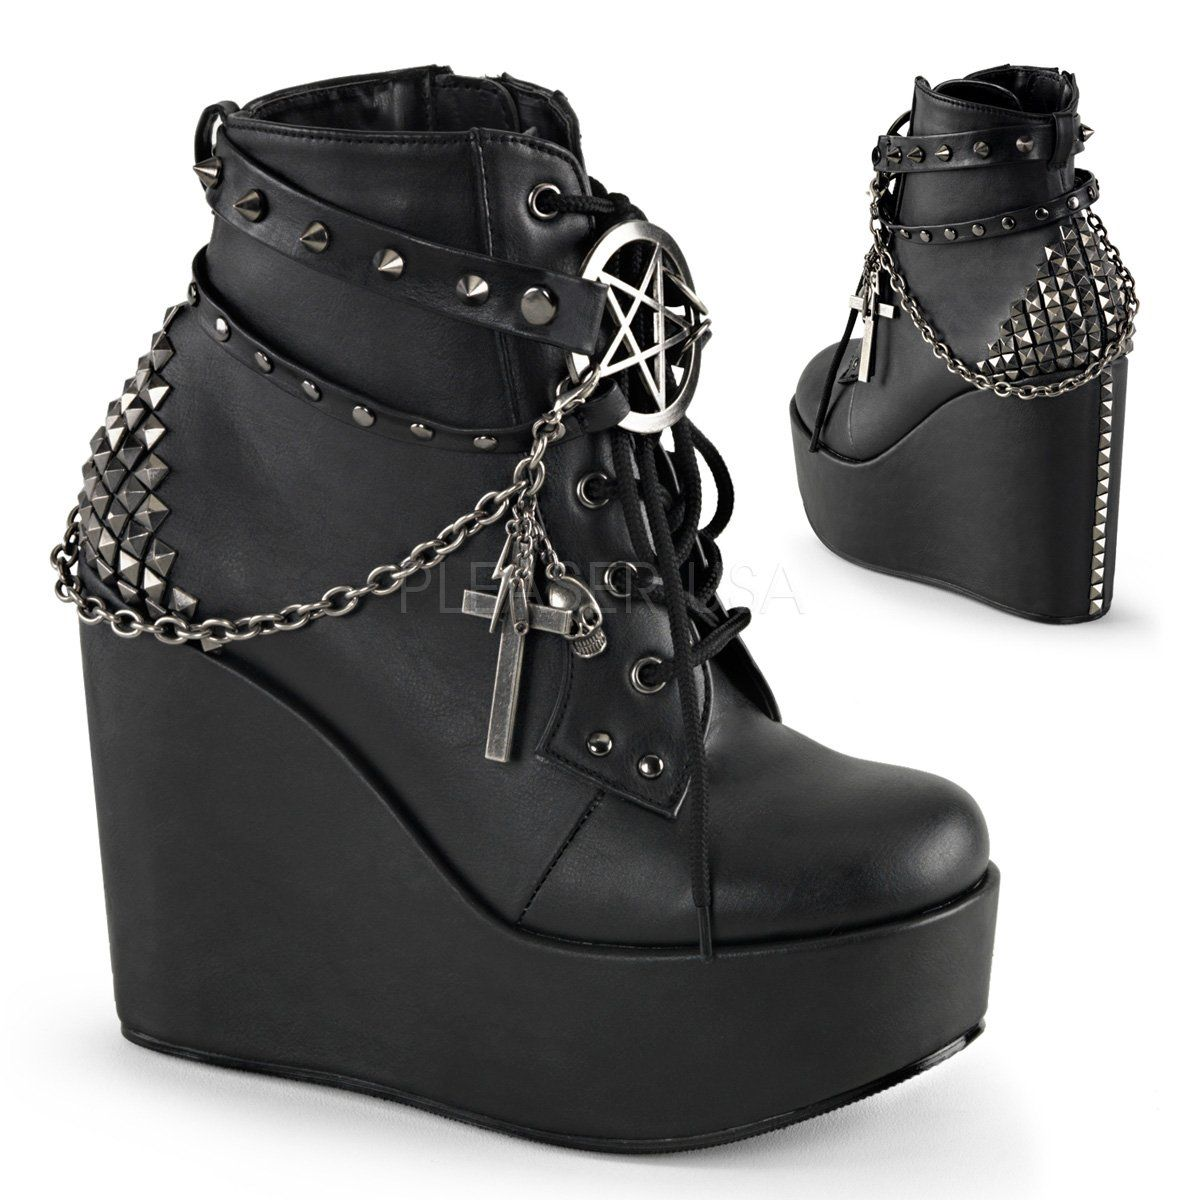 Black Veggie Wedges, Black veggie leather look 5 inch wedge platform lace  up front ankle boos with wrap around studded straps and pentagram detail.